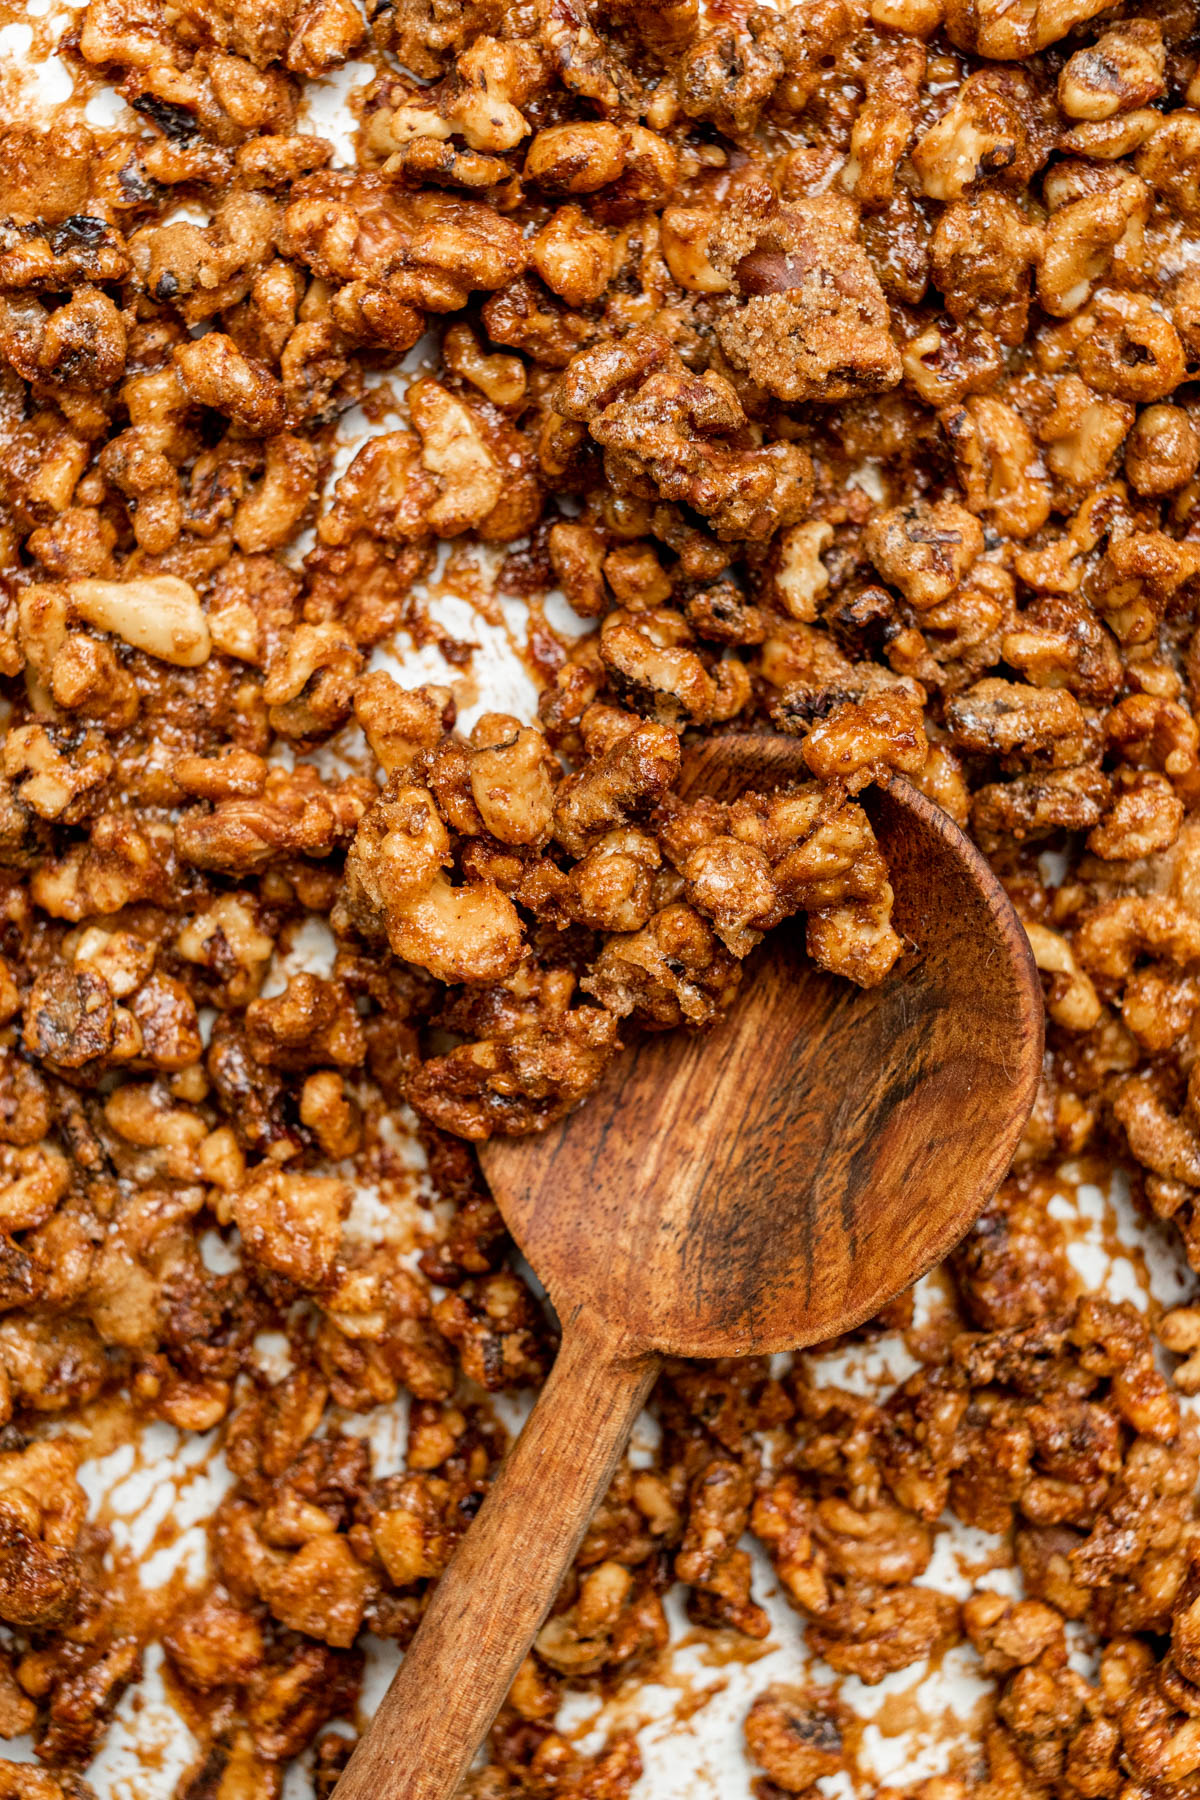 Candied walnuts on a baking sheet along with a decorative wooden spoon.